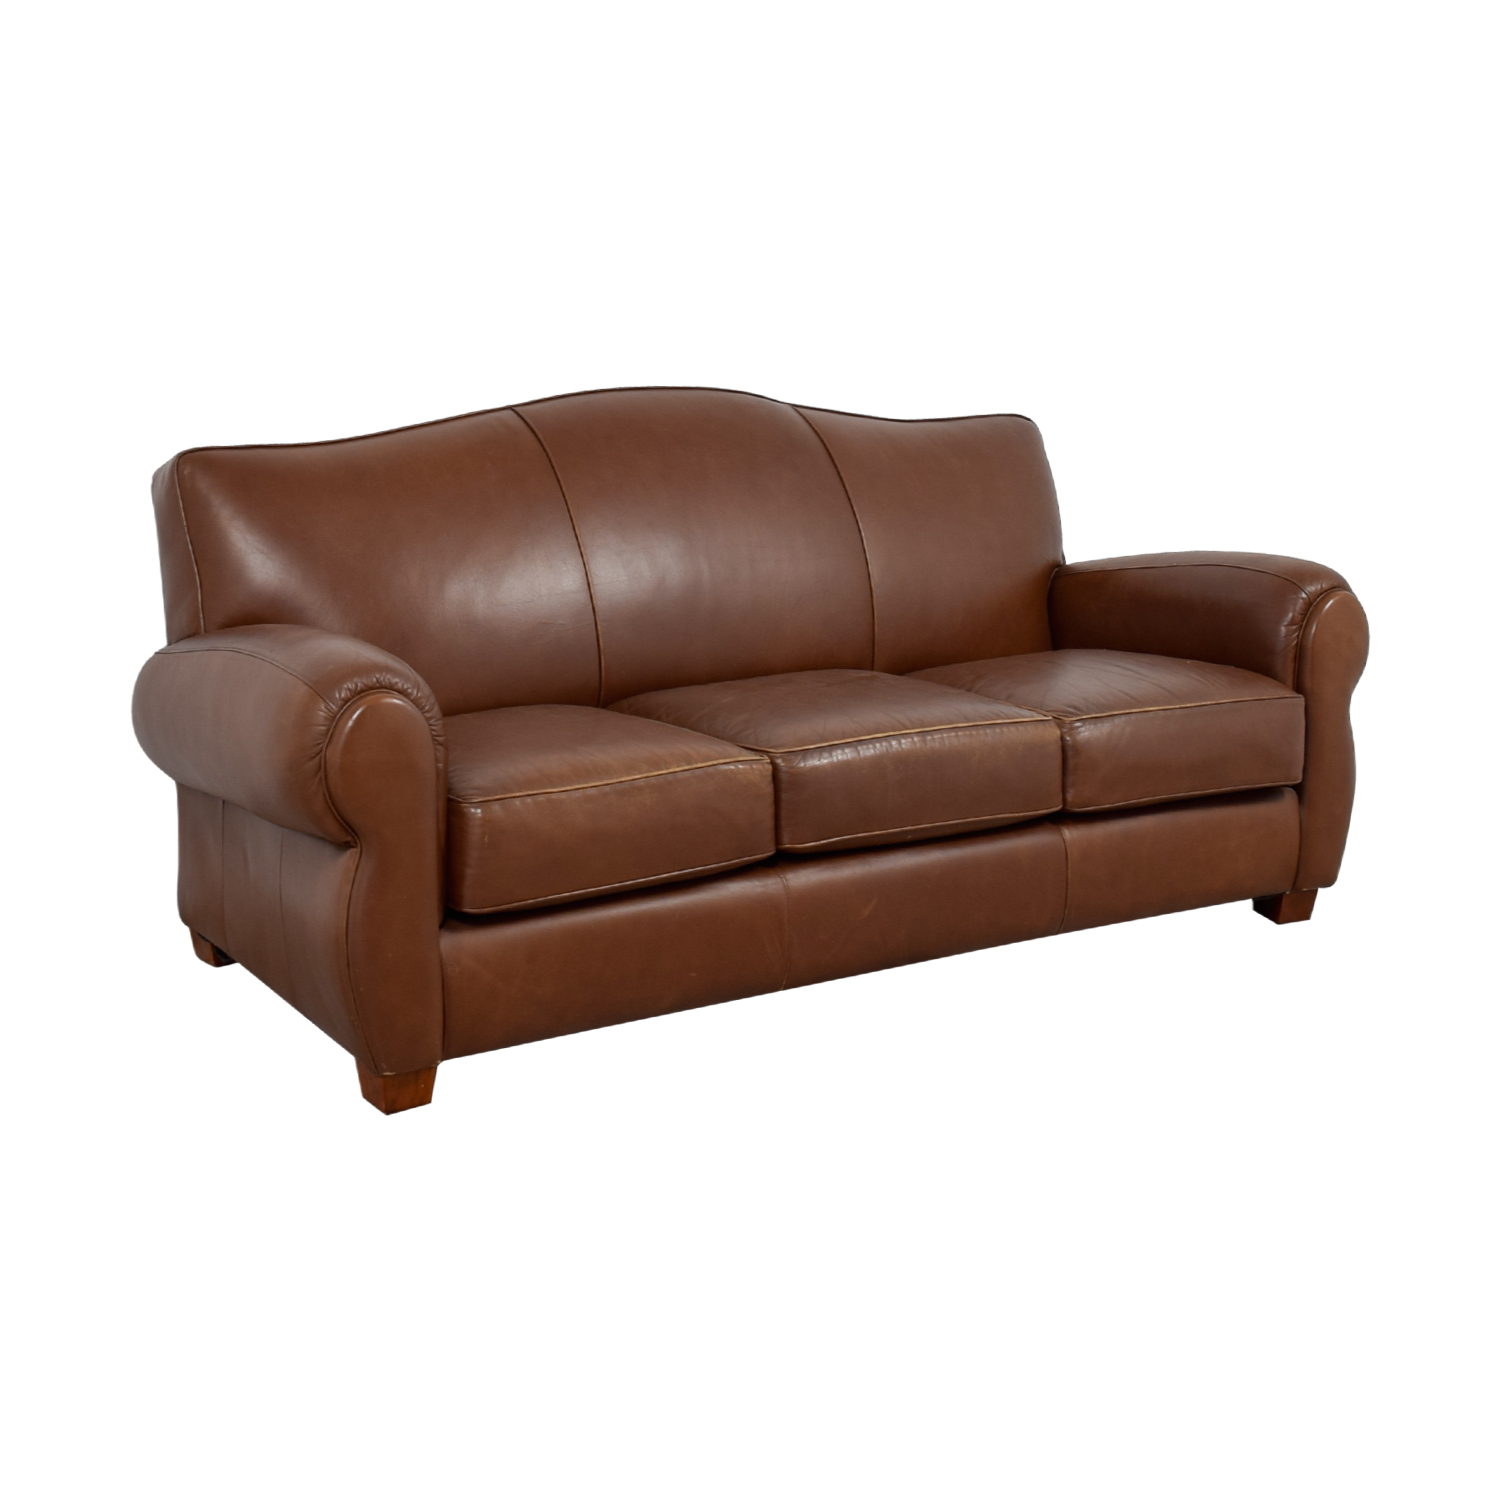 Thomasville Thomasville Brown Leather Three-Cushion Sofa nj